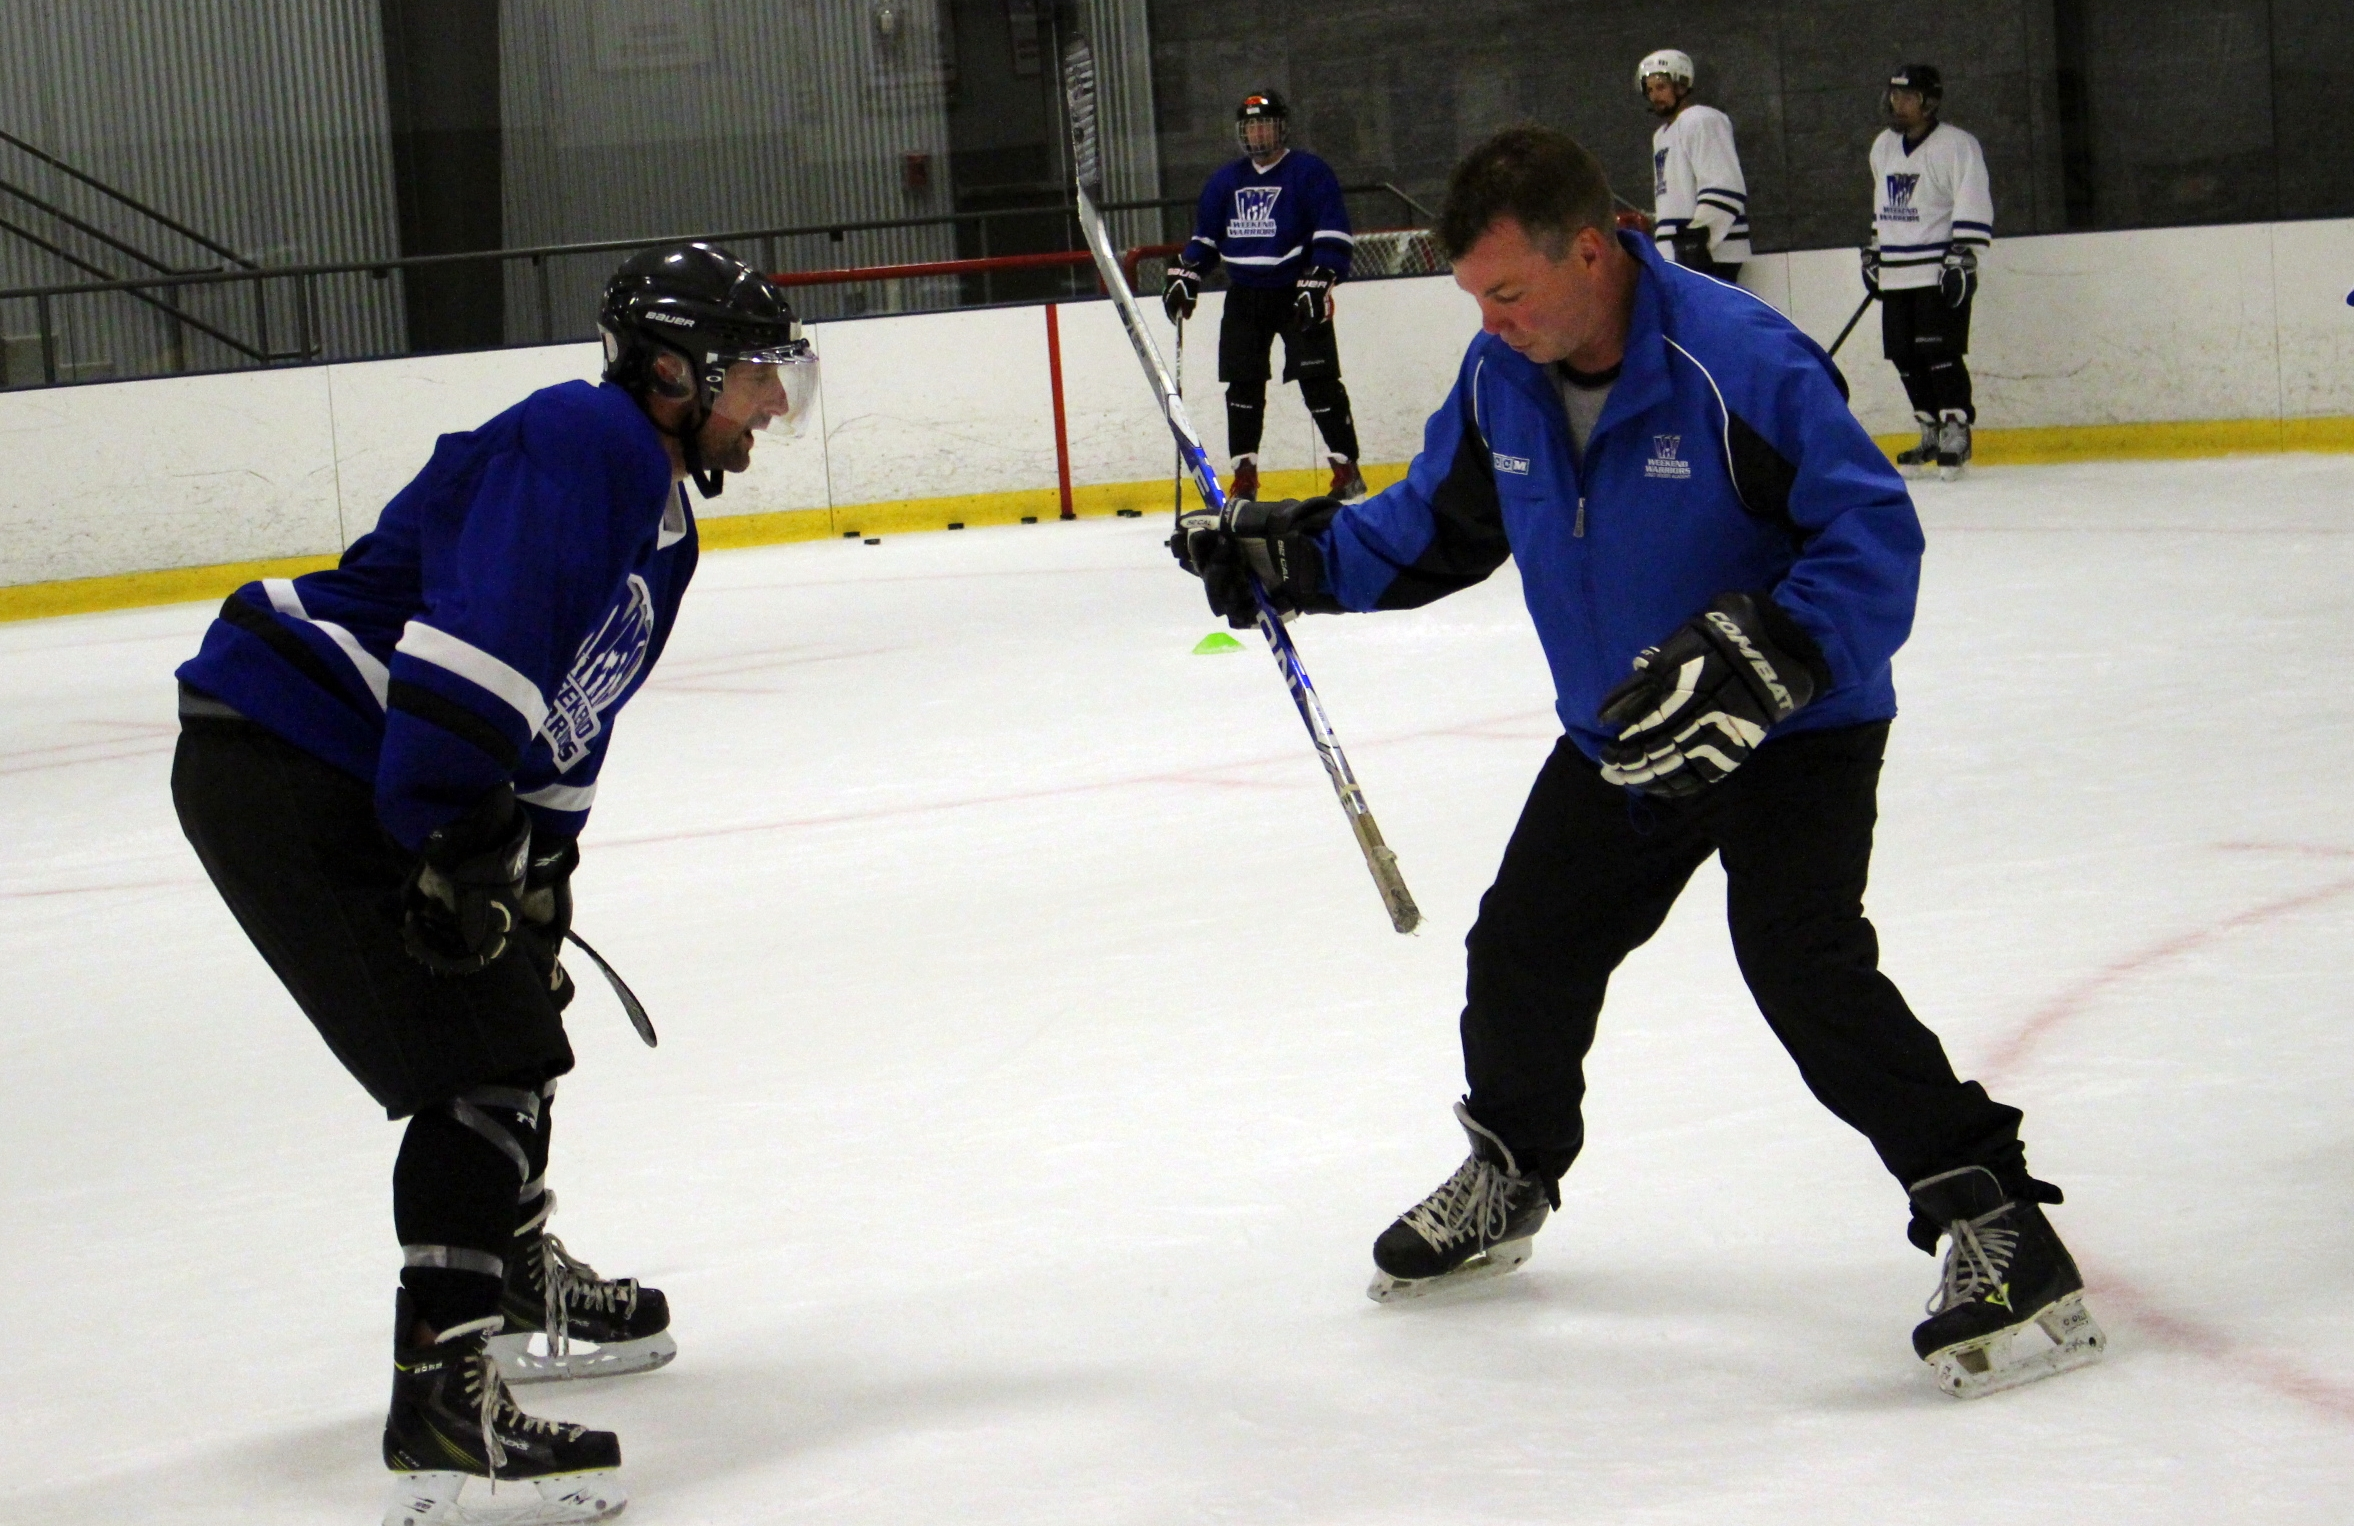 Coach Kevin works with player